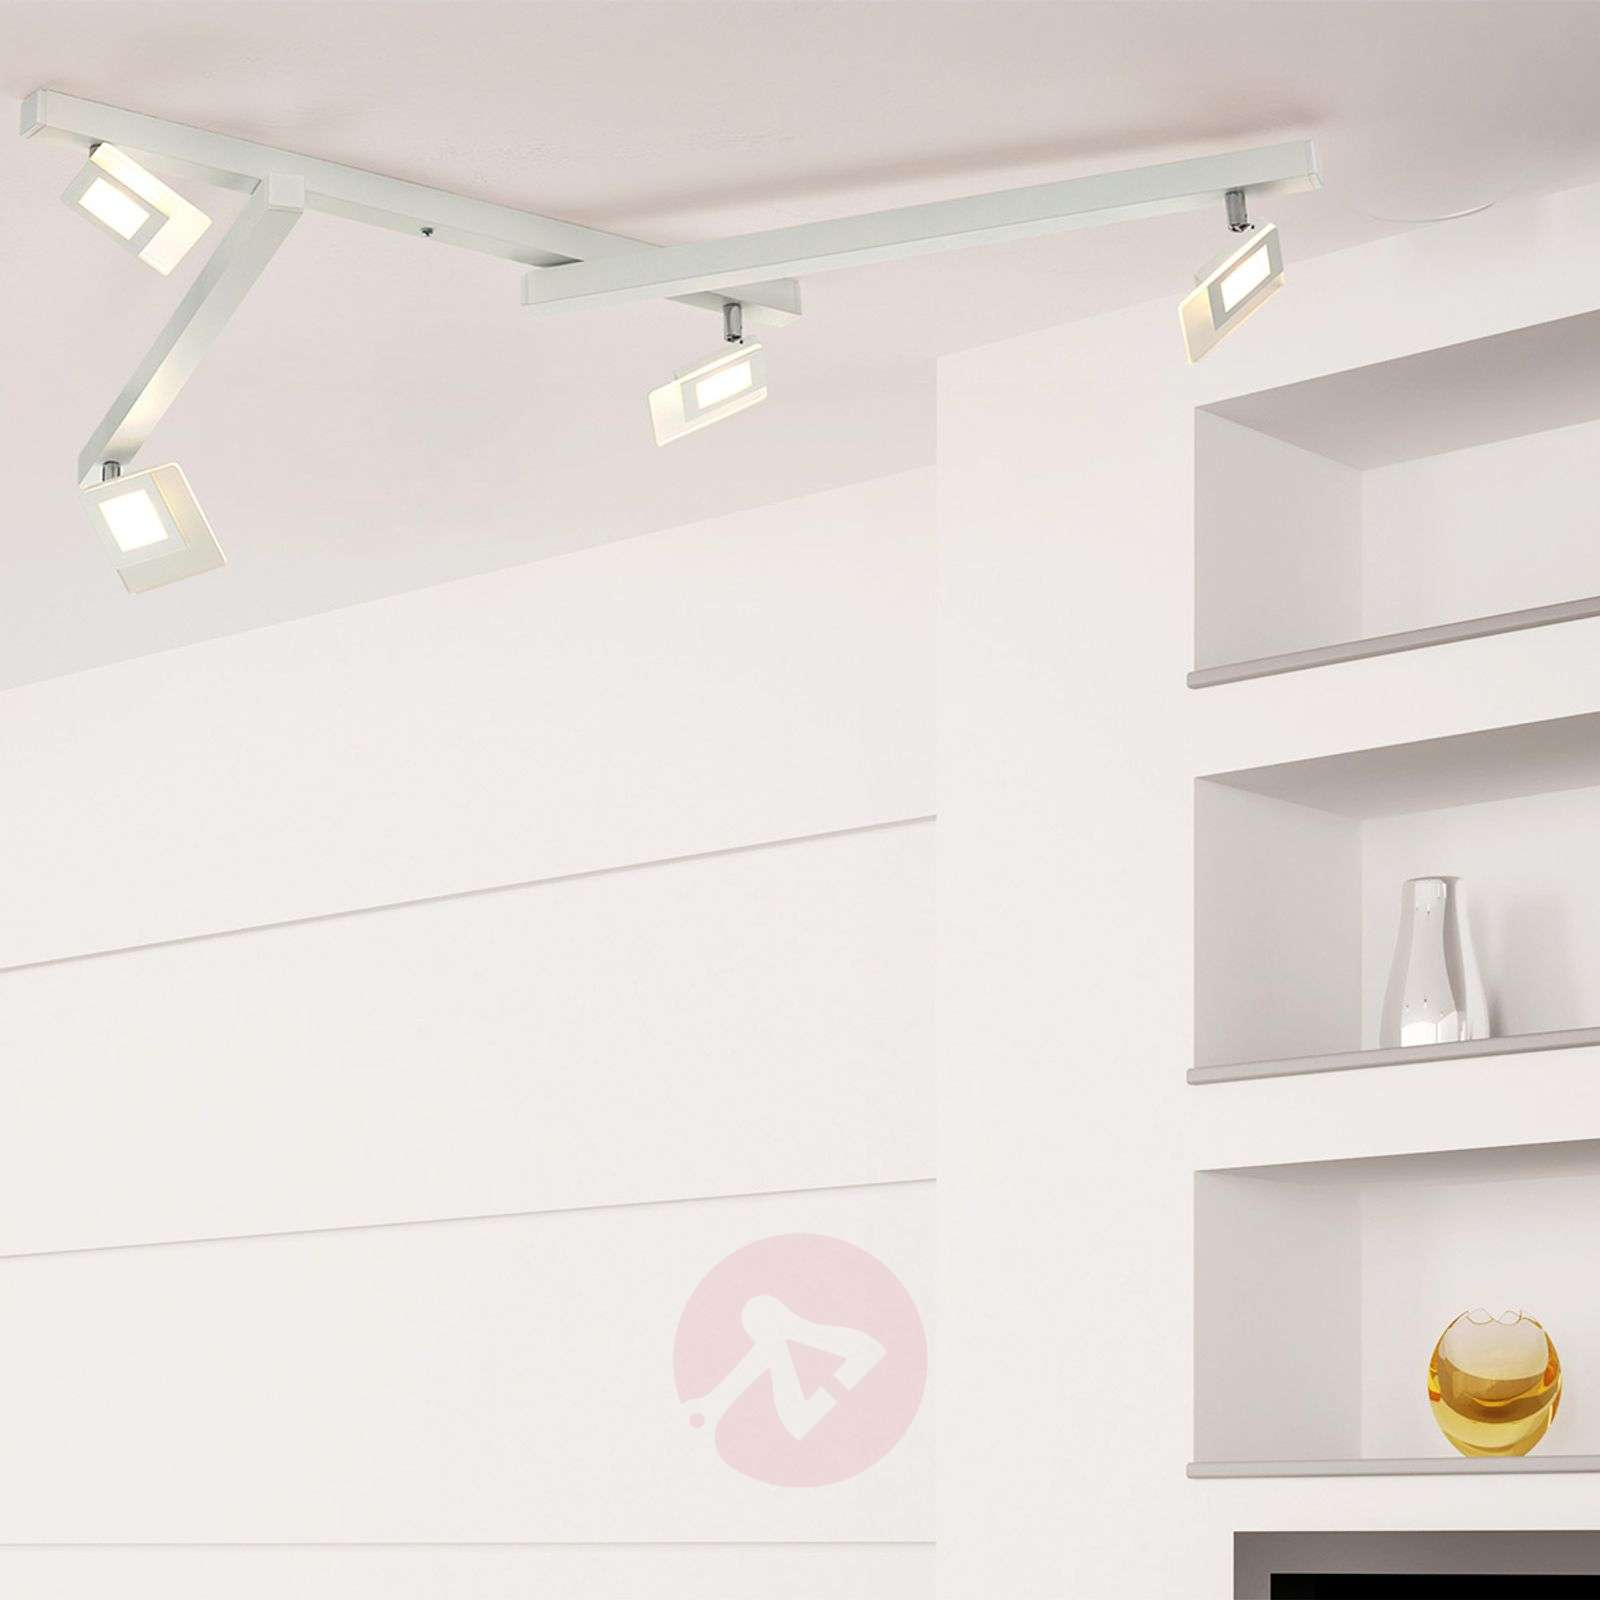 Vijflamps LED-plafondlamp Line in wit-1556069-01